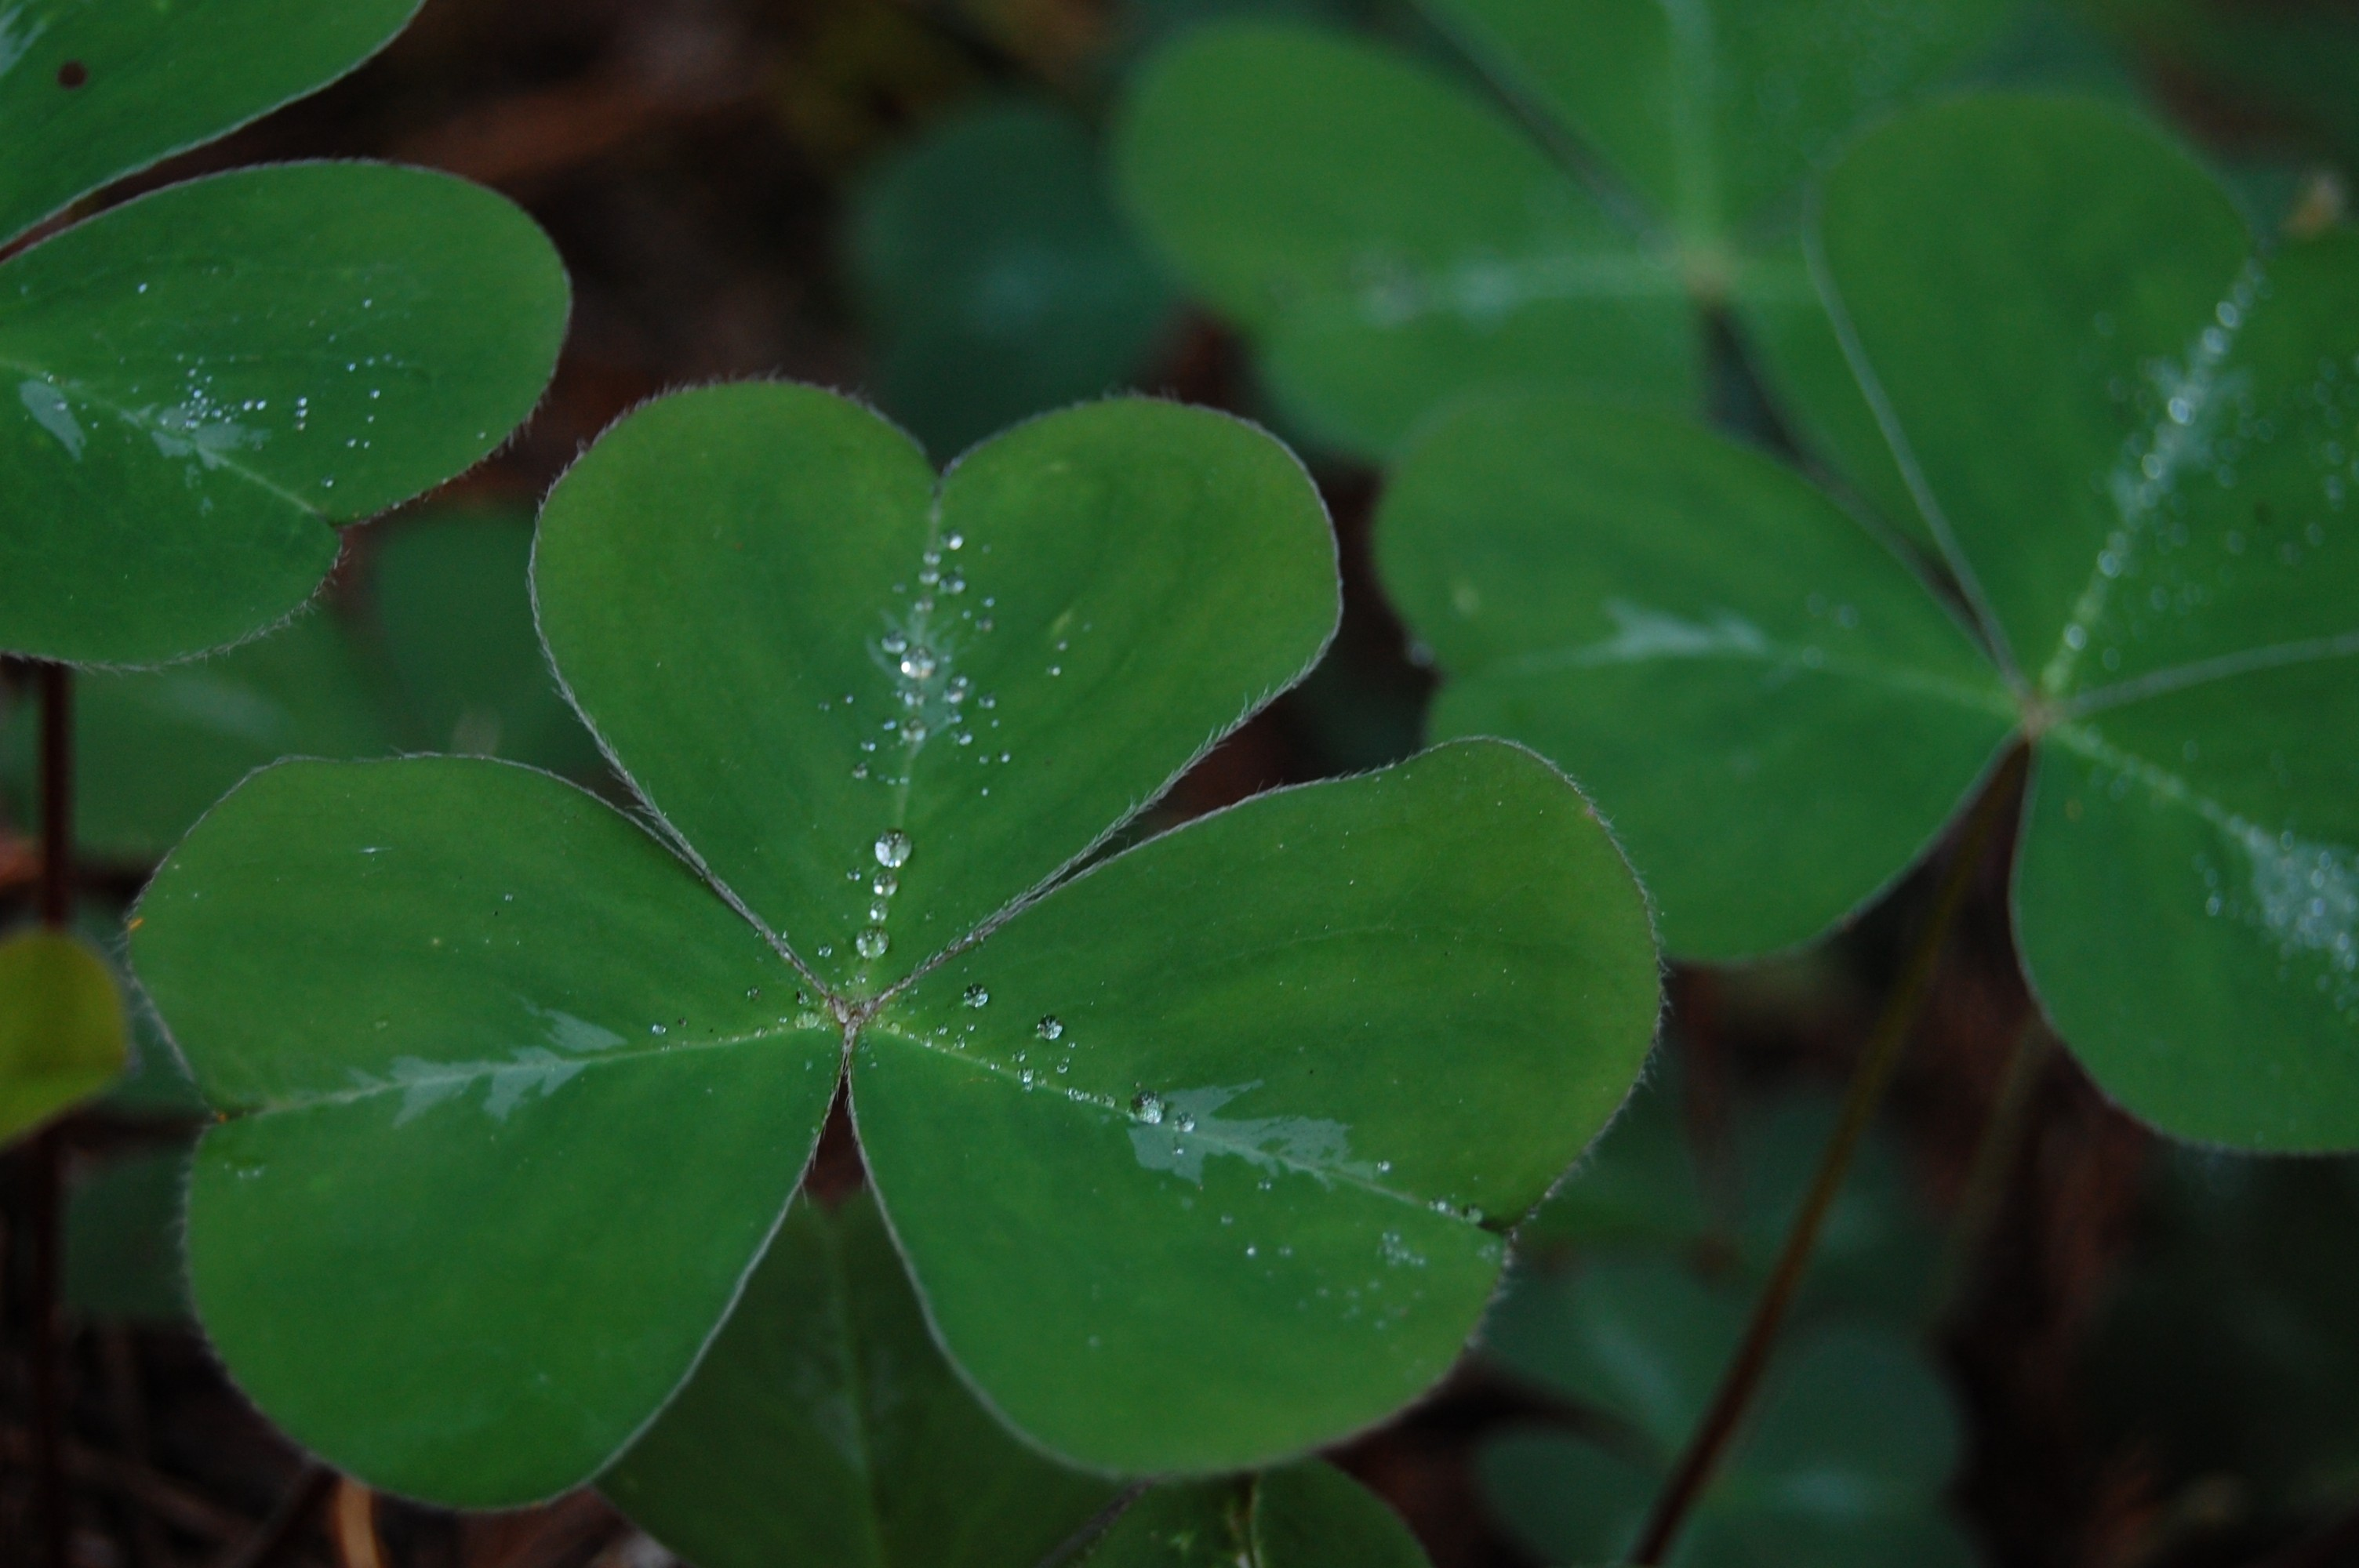 Shamrock Background Download Free Awesome Hd Wallpapers